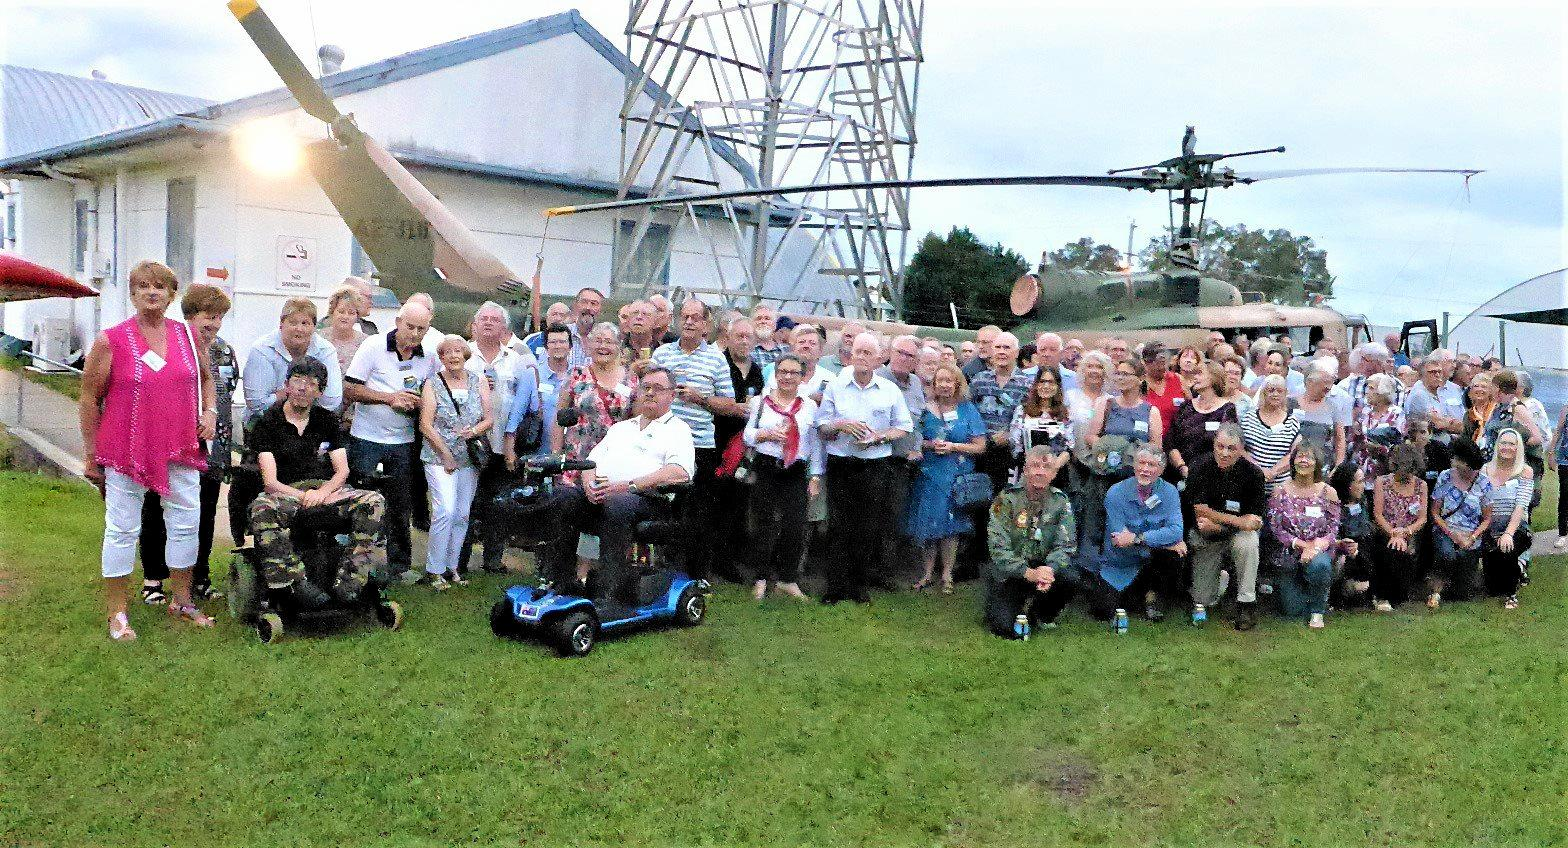 A DATE WITH 'HUEY': More than 100 RAAF 5 Squadron veterans recently held a reunion at the Queensland Air Museum with A2-310.